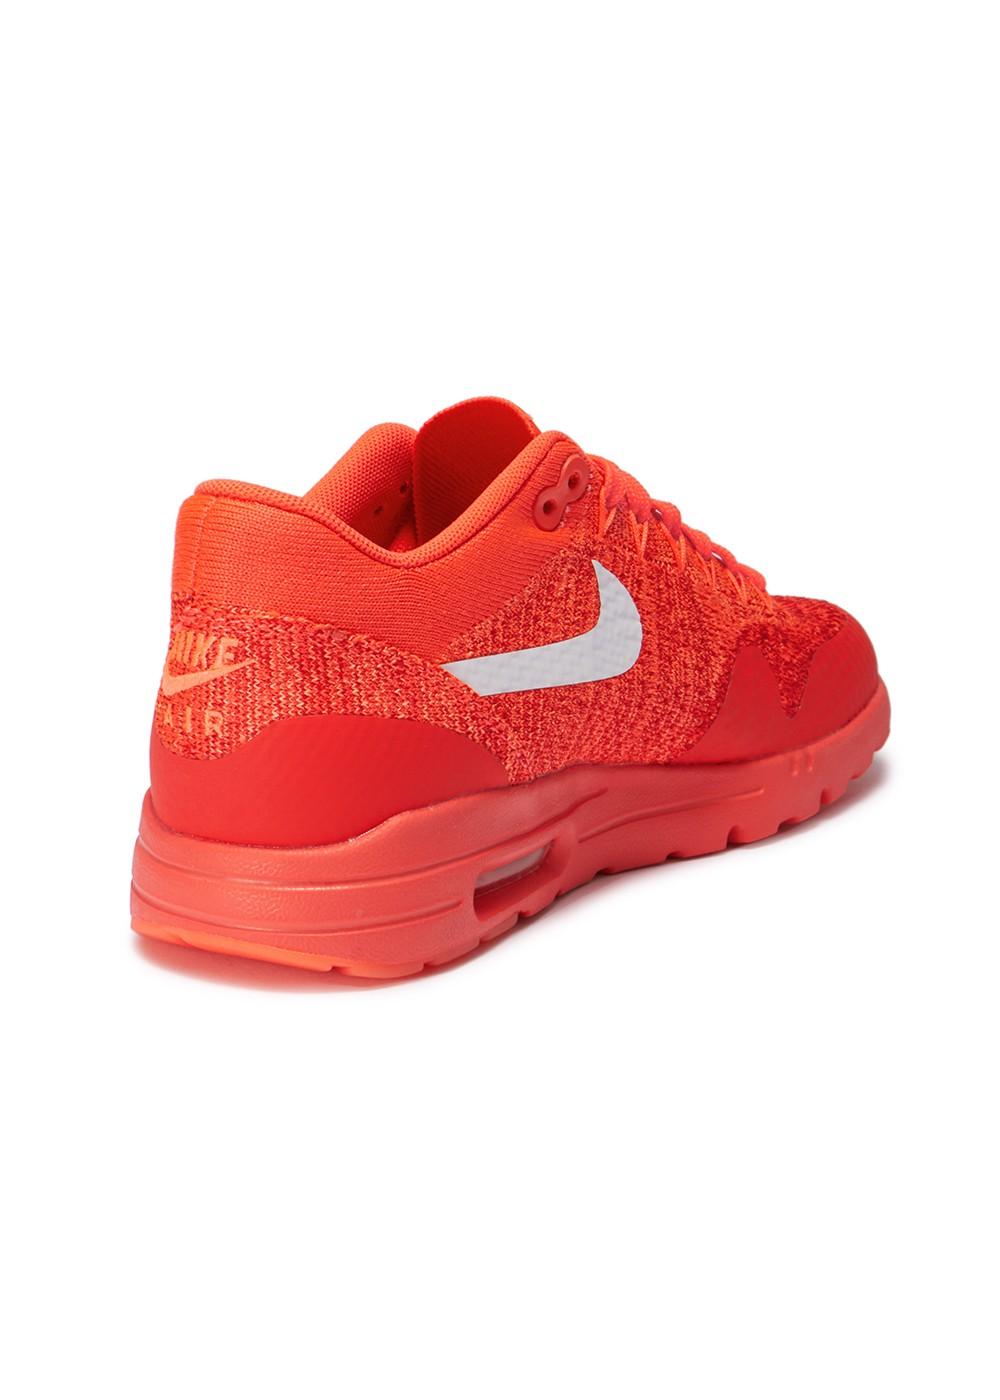 WMNS AIR MAX 1 ULTRA FLYKNIT 843387-601【NIKE】|ORANGE|スニーカー|Styles